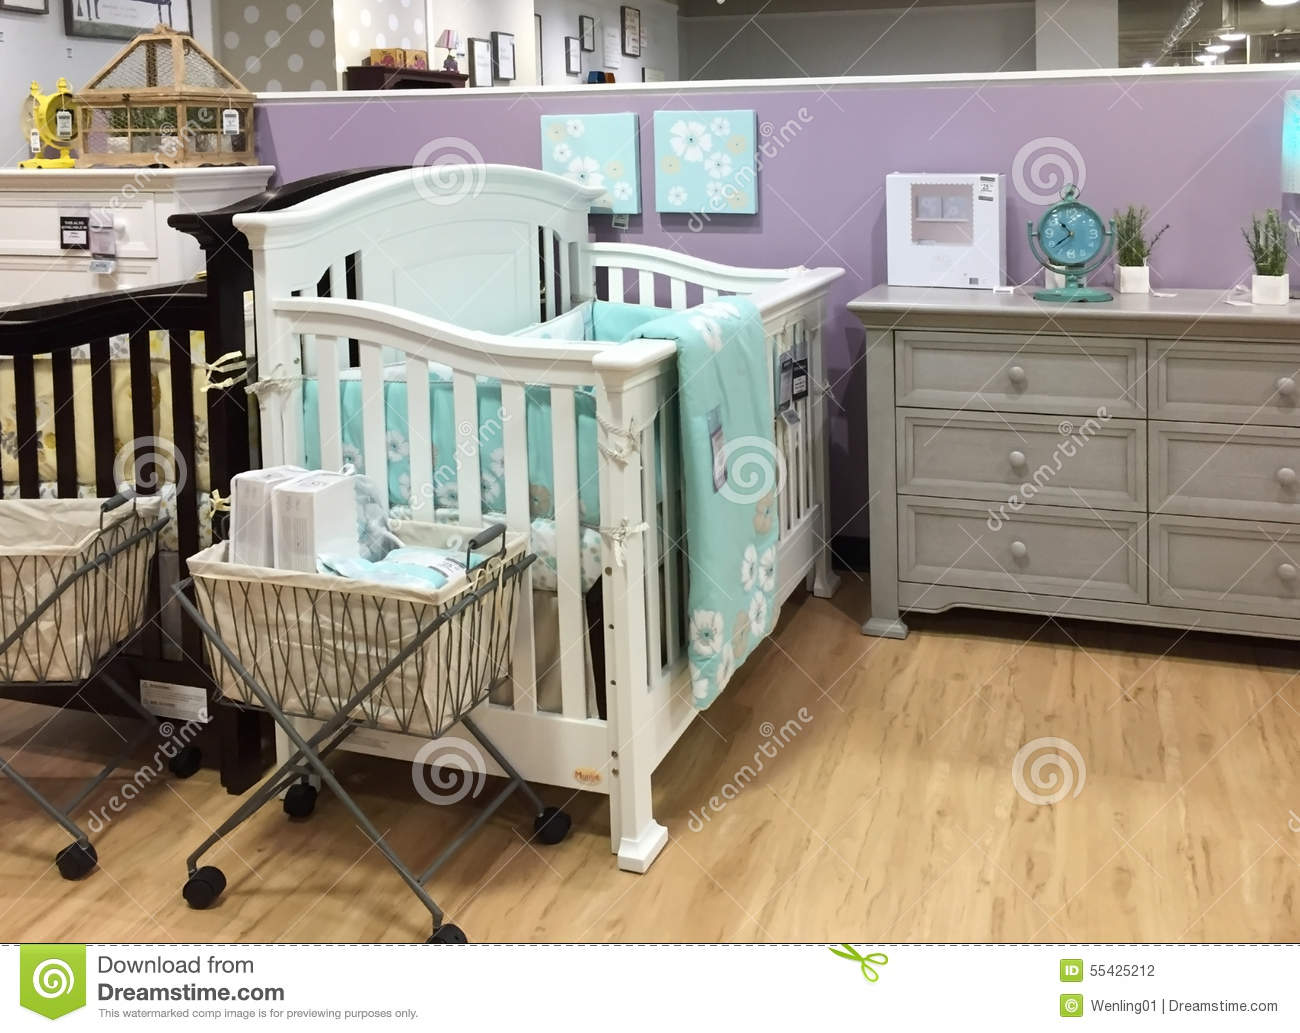 Selling Bedroom Furniture Baby Bedroom Furniture Selling Editorial Photography Image 55425212